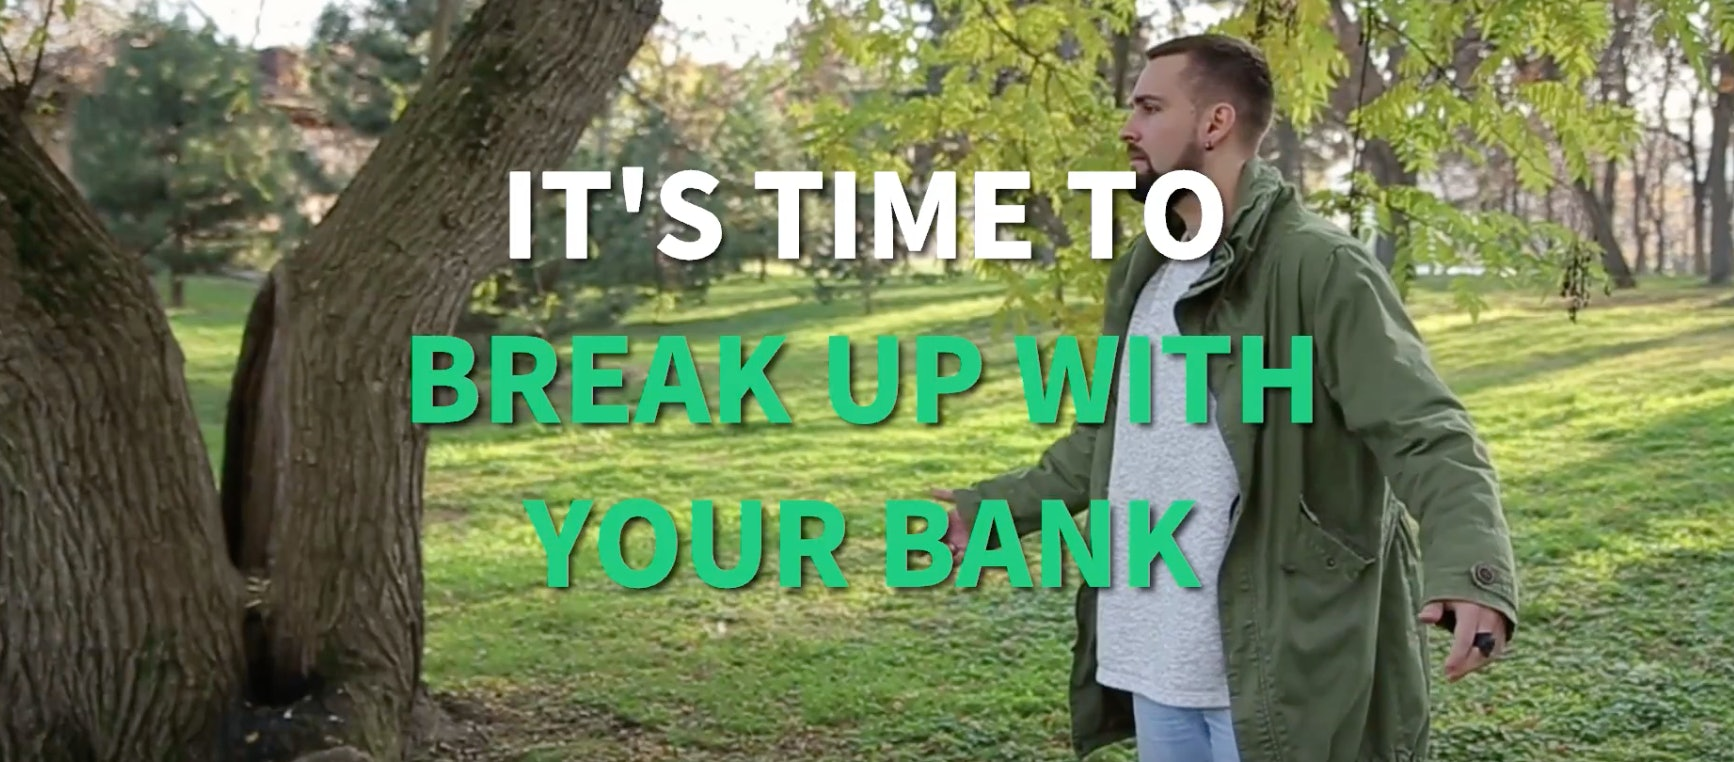 Chime wants you to dump your bank.